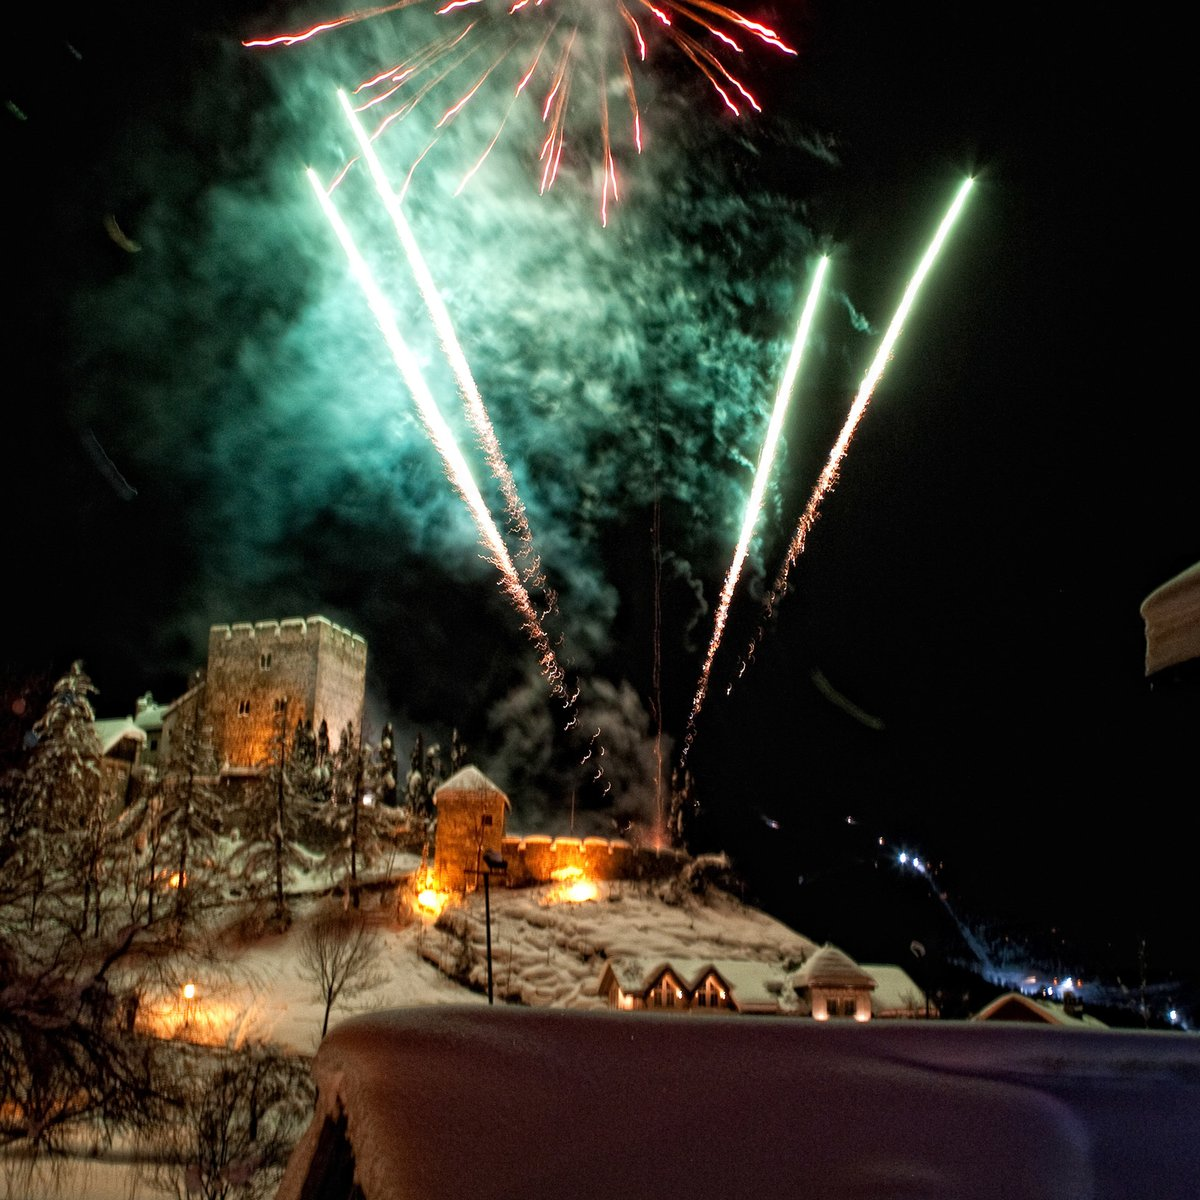 serfaus-fiss-ladis-magic-ladis-feuerwerk-c-andreas-kirschner-1.jpg